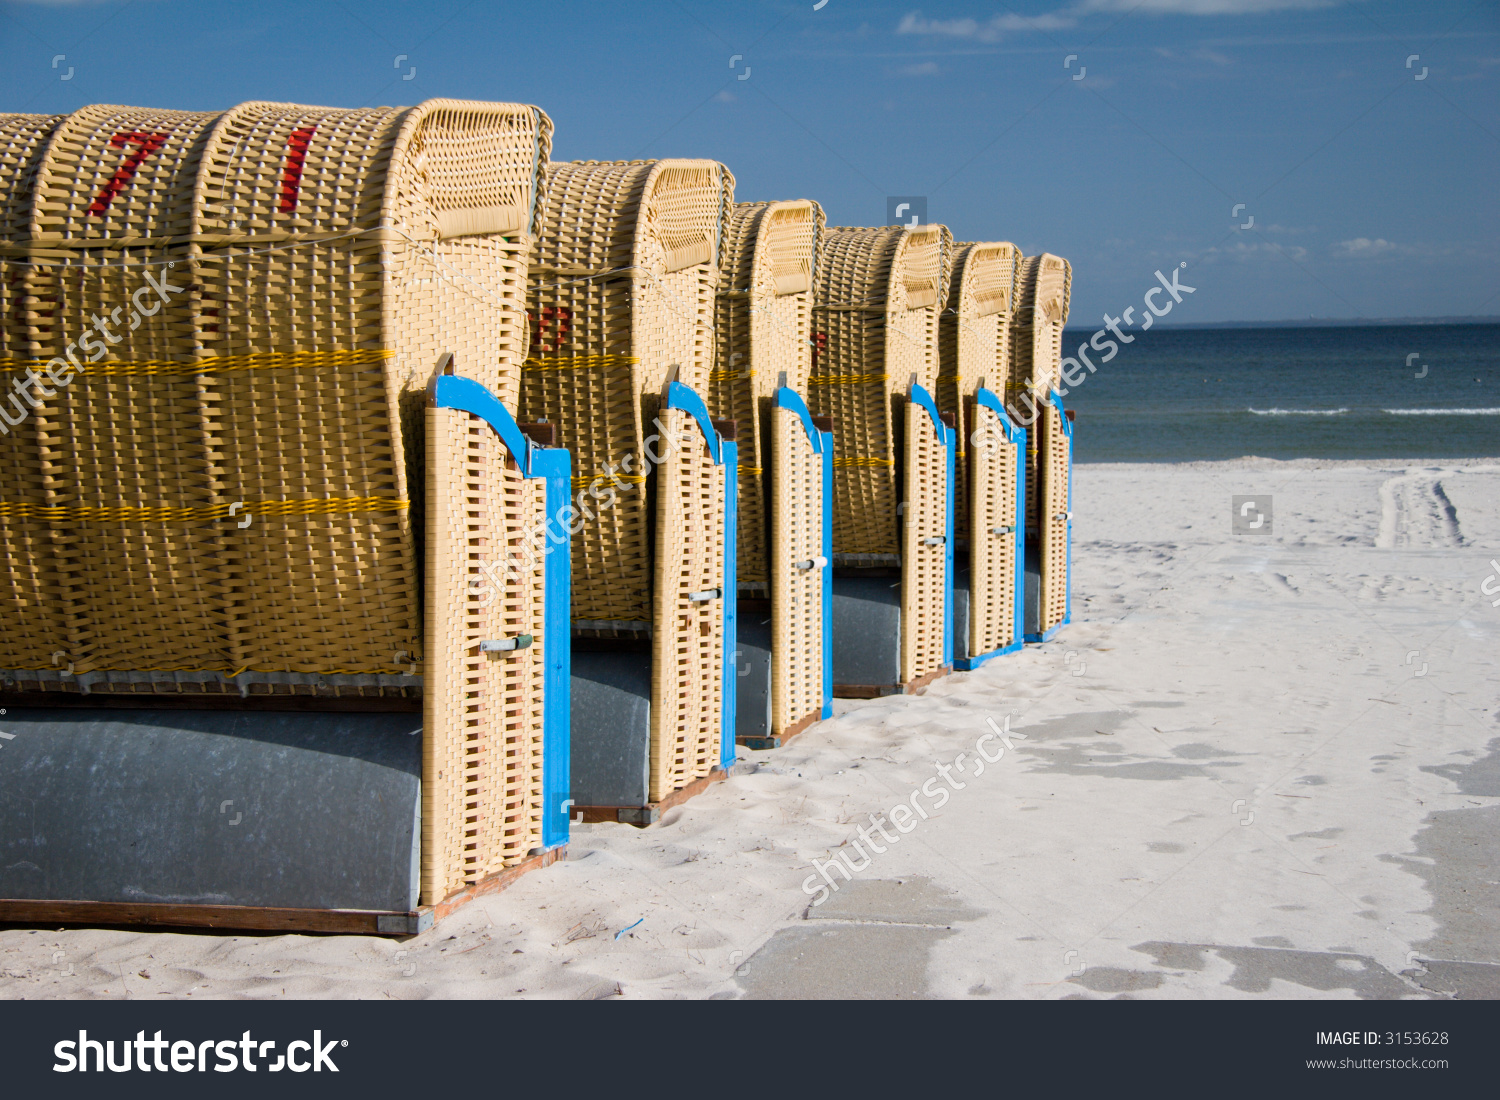 Roofed Wicker Beach Chair At Baltic Sea, Germany Stock Photo.